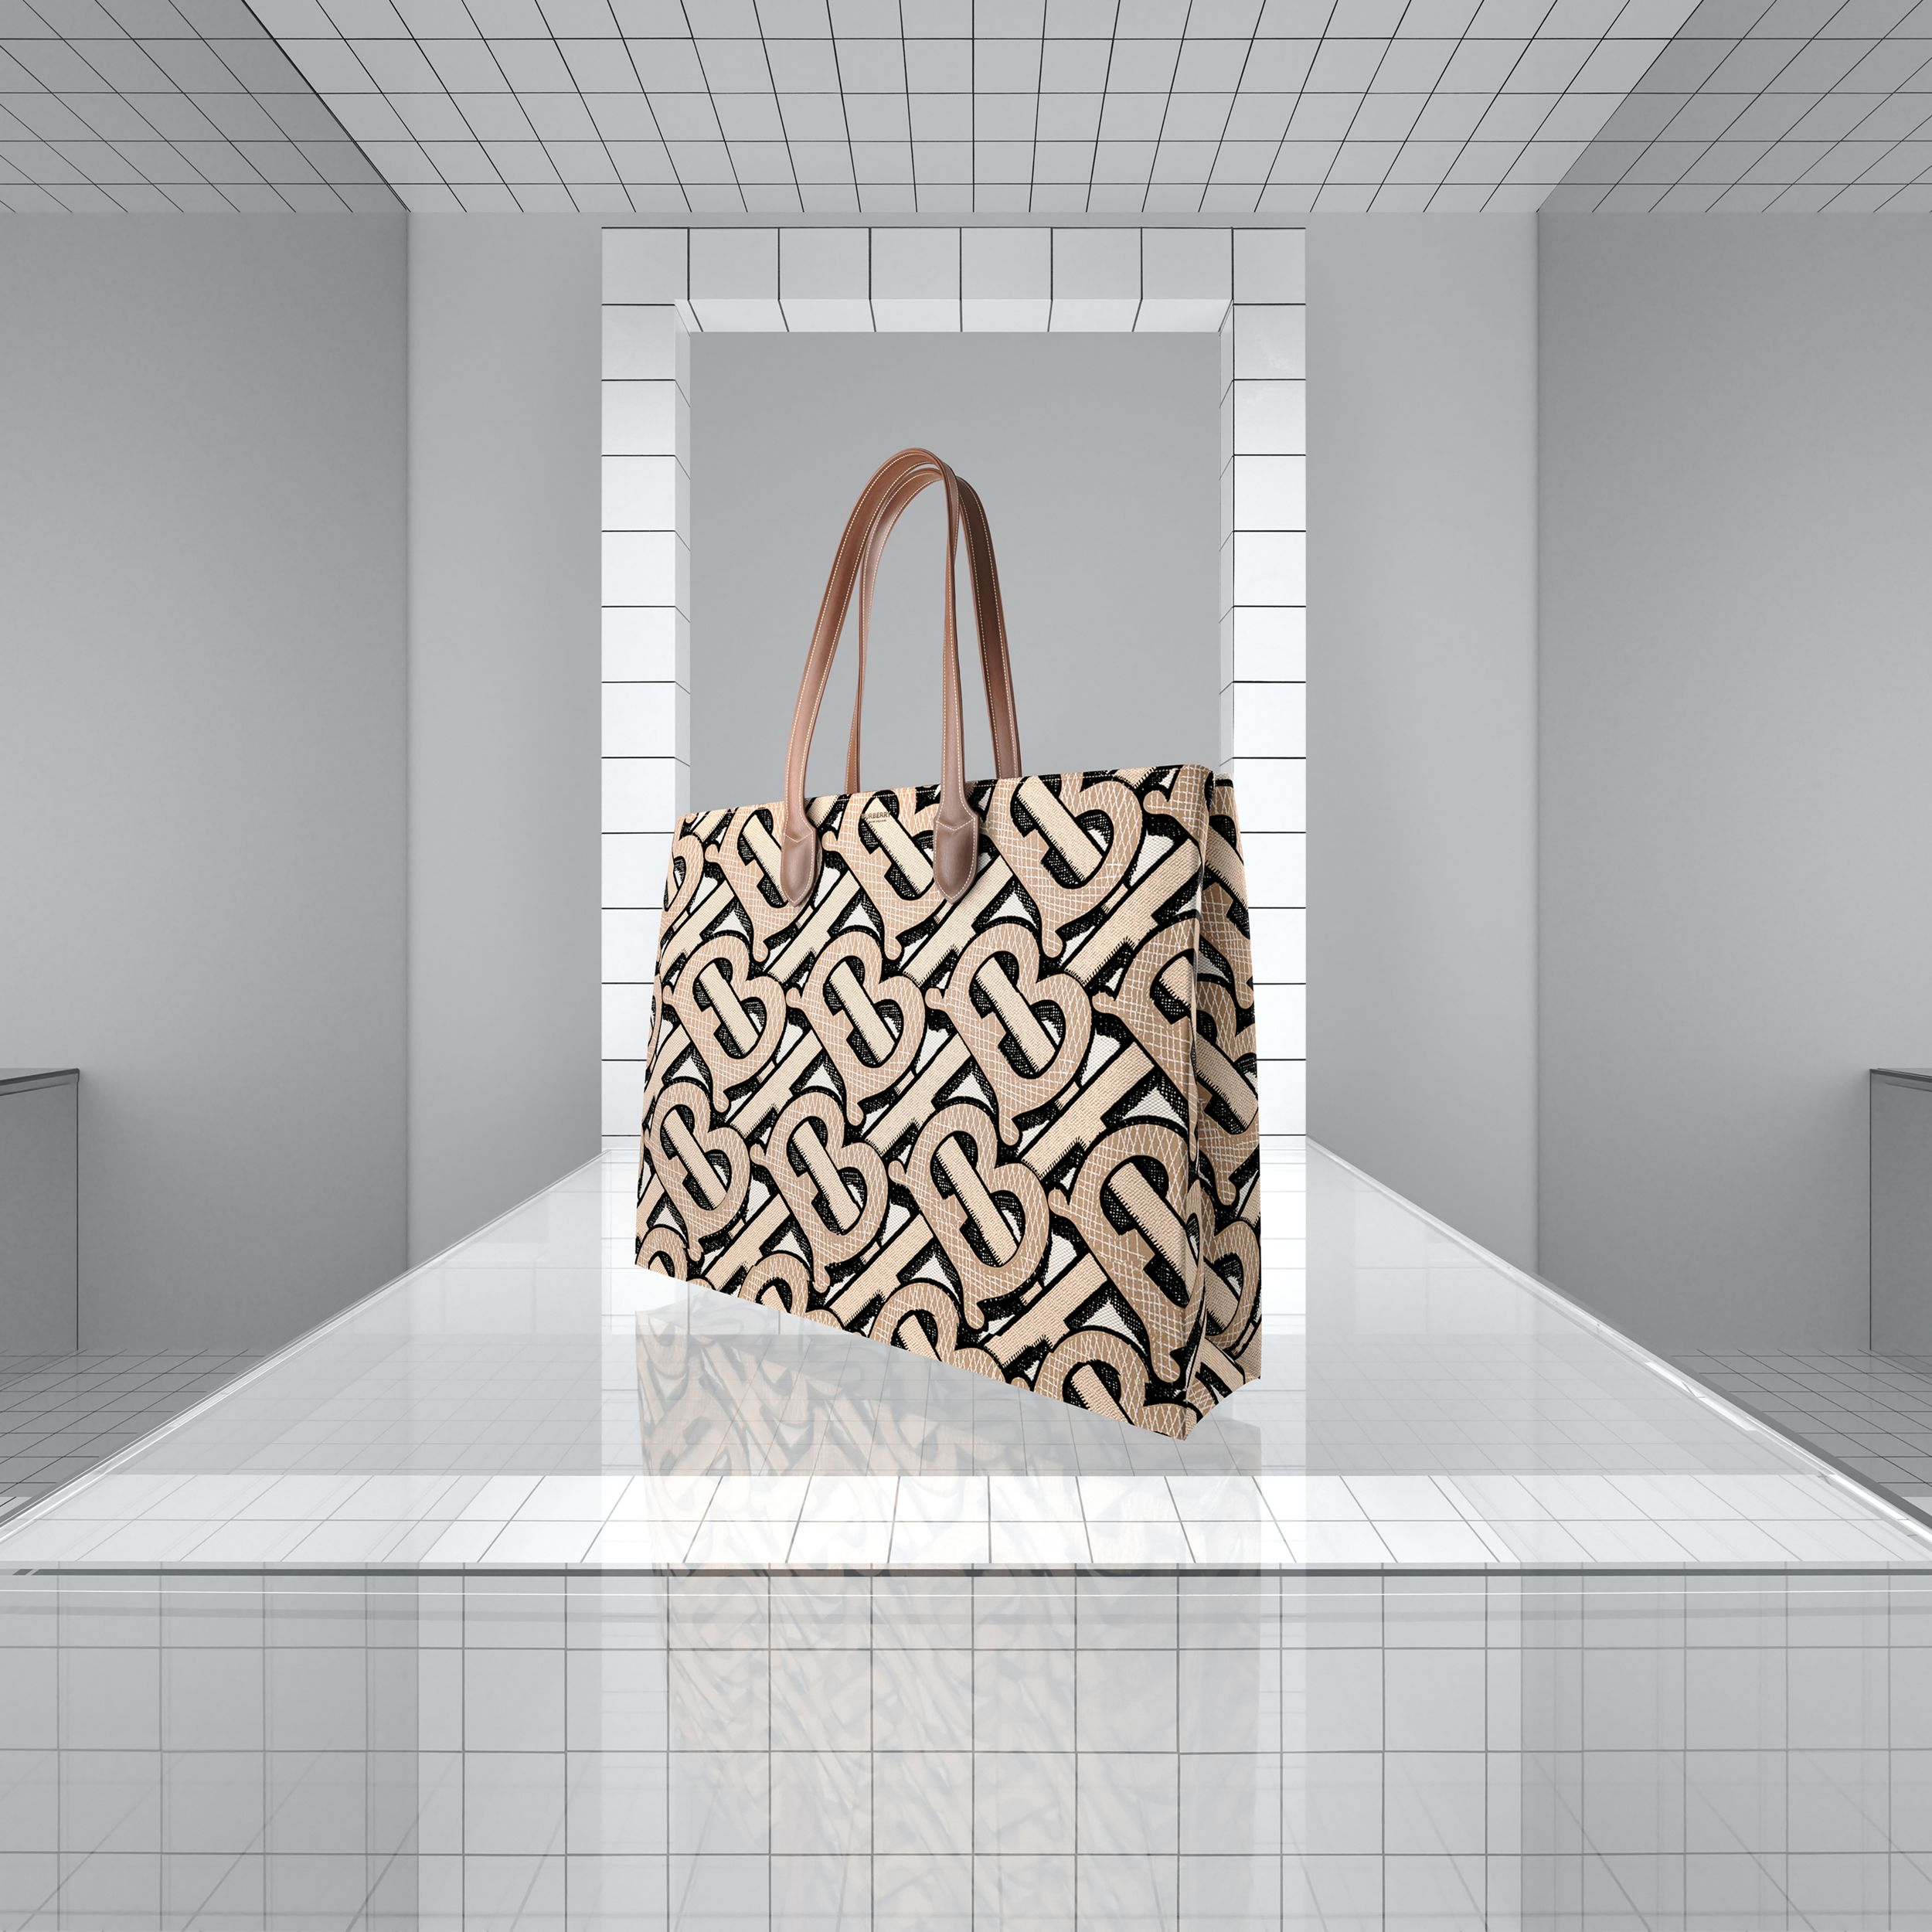 Monogram Print E-canvas Tote Bag in Dark Beige | Burberry Australia - 2